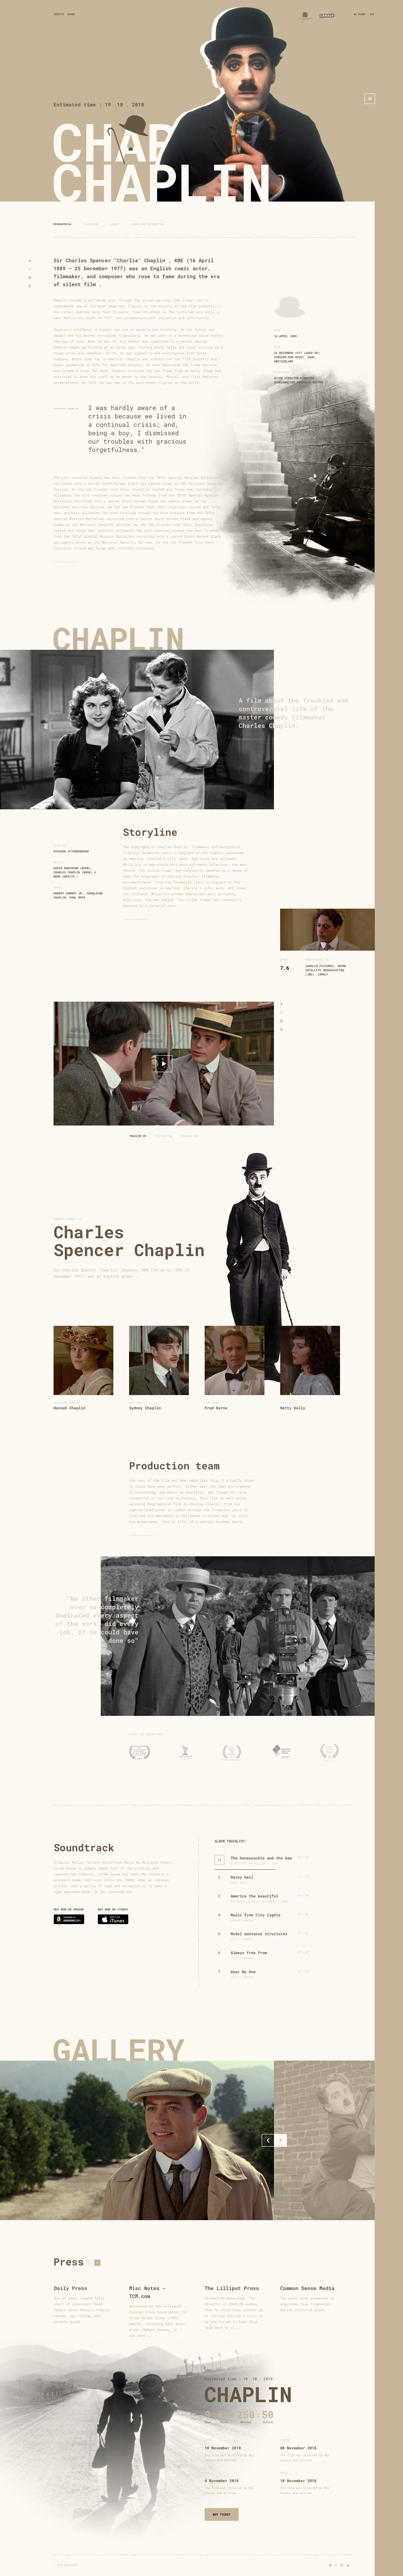 Free Sketch File Landing Page For Biographical Film